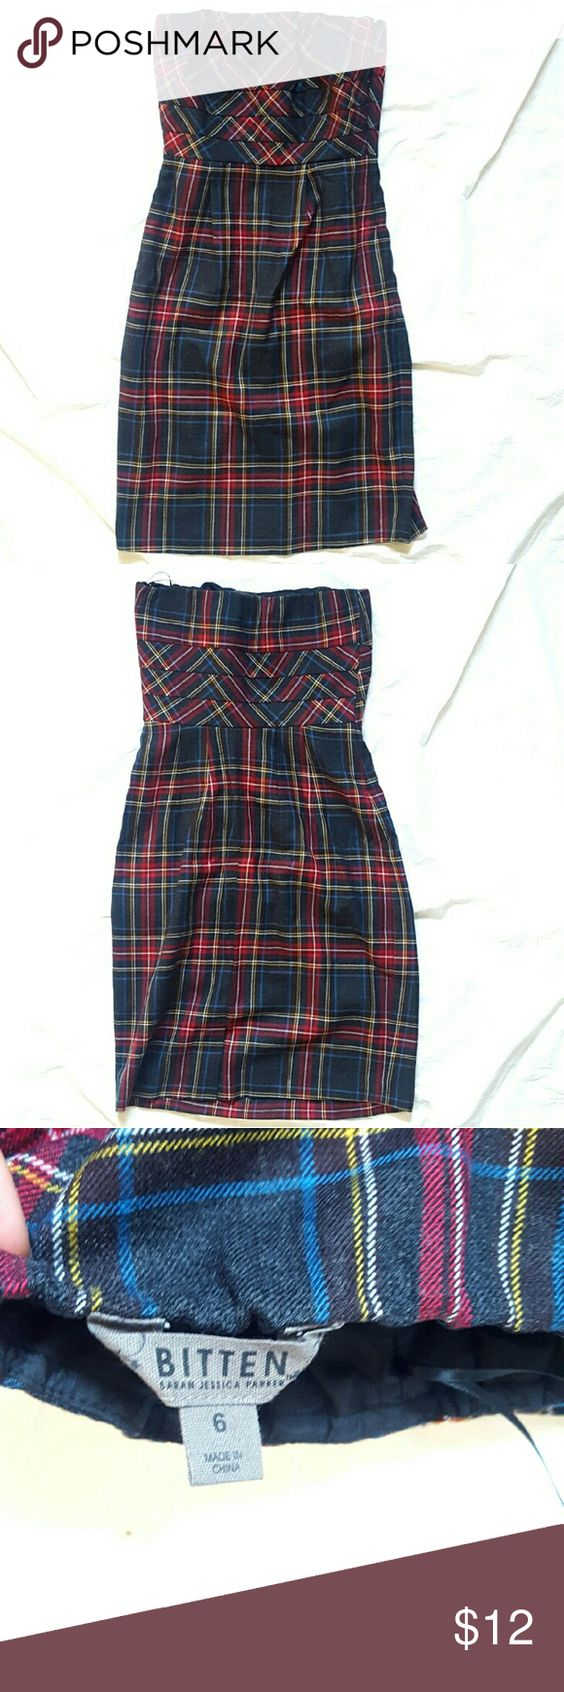 """Plaid Strapless Dress Plaid Strapless Dress (Bitten by Sarah Jessica Parker) Excellent used condition, no signs of wear. Size 6   Measurements  Chest 15"""" Waist 13.5 Full length 31"""" Bitten Dresses Strapless"""